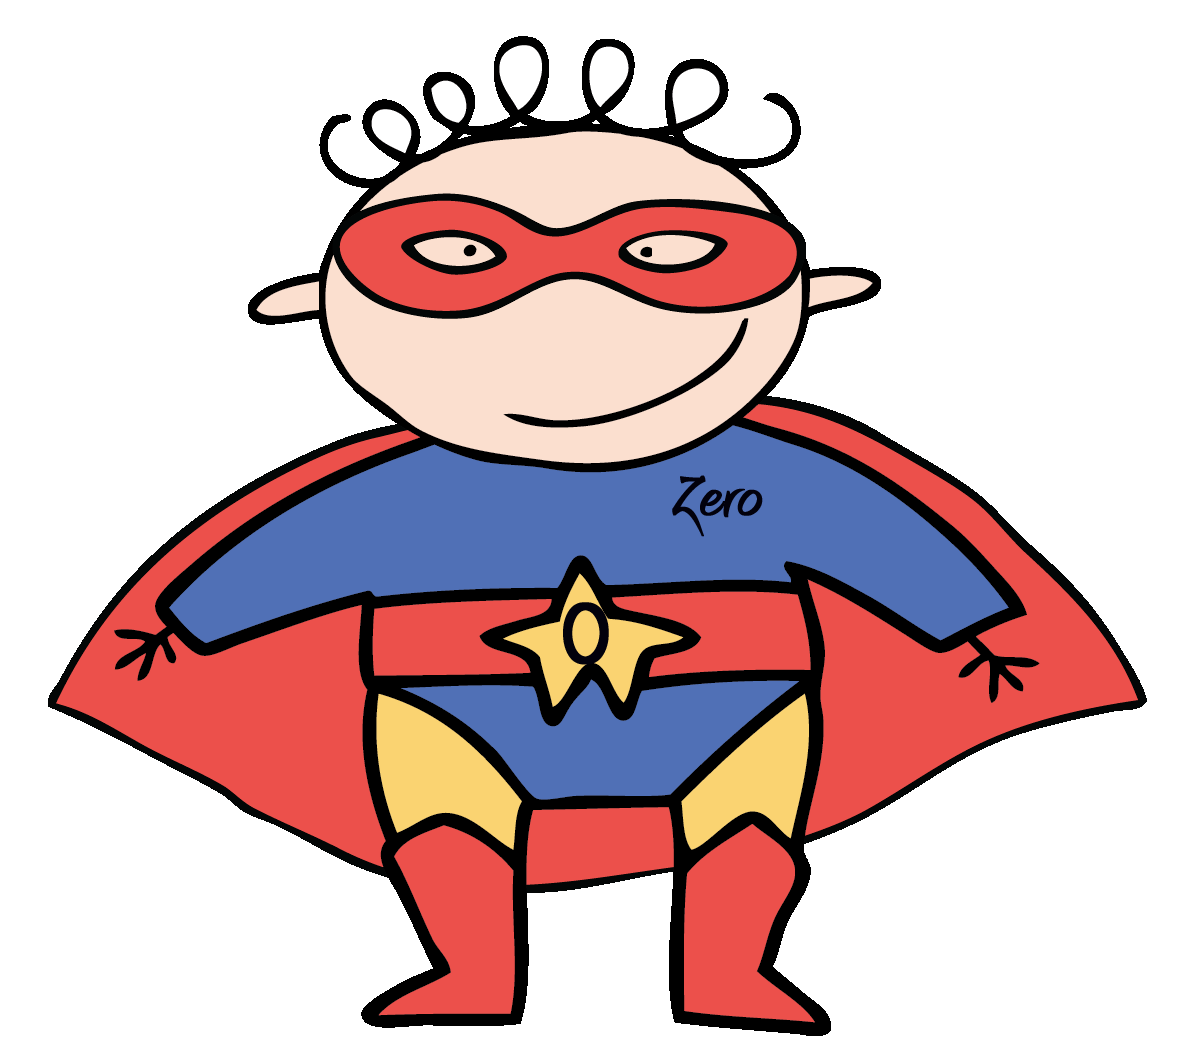 Tuesday was the 10th day of school, so that meant that we had our first  visit from Zero the Hero! We are counting the days we come to school on our  100 ...